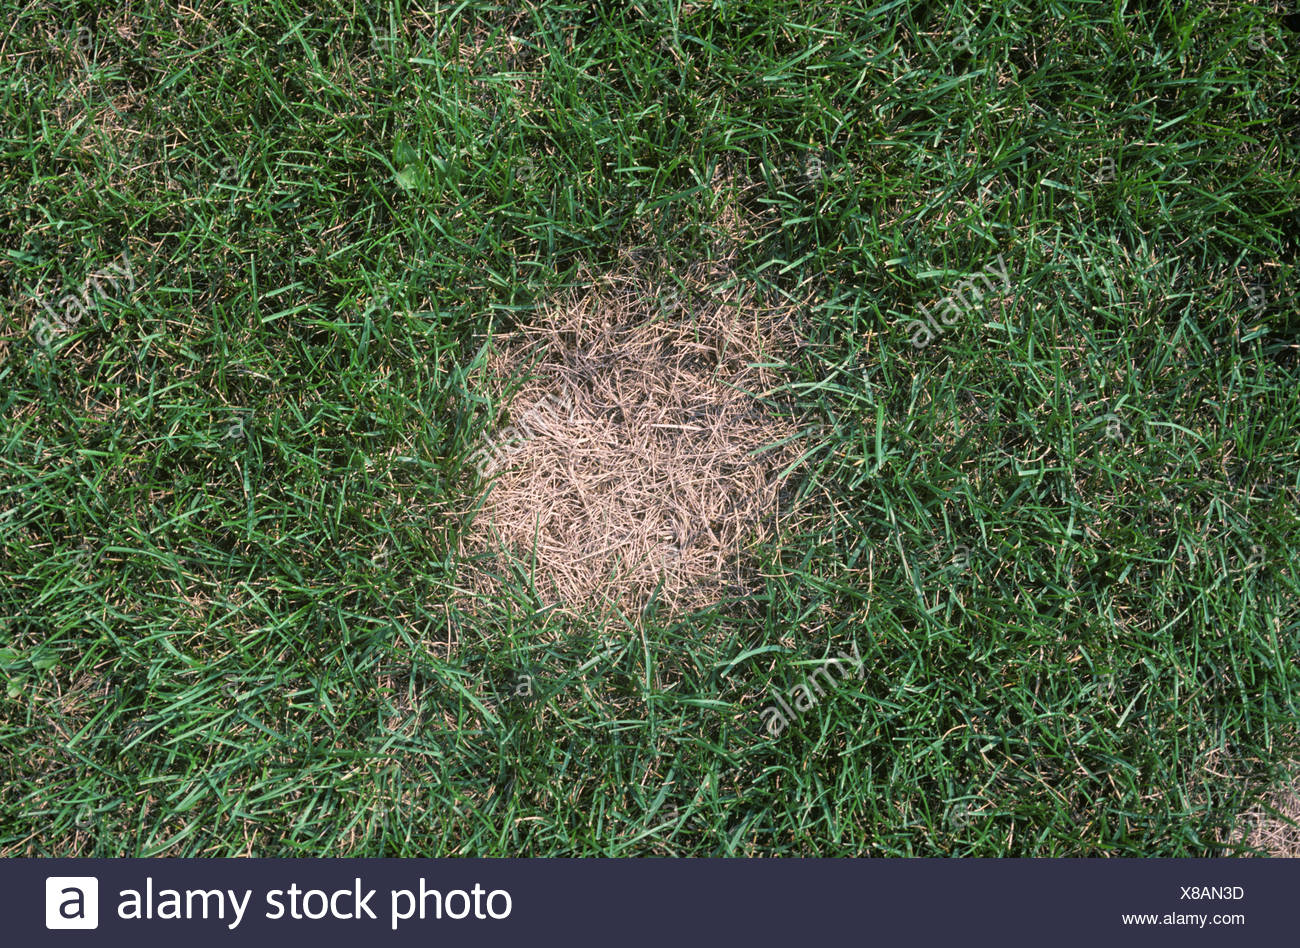 Summer patch Magnaporthe poae in Poa spp lawn grass - Stock Image